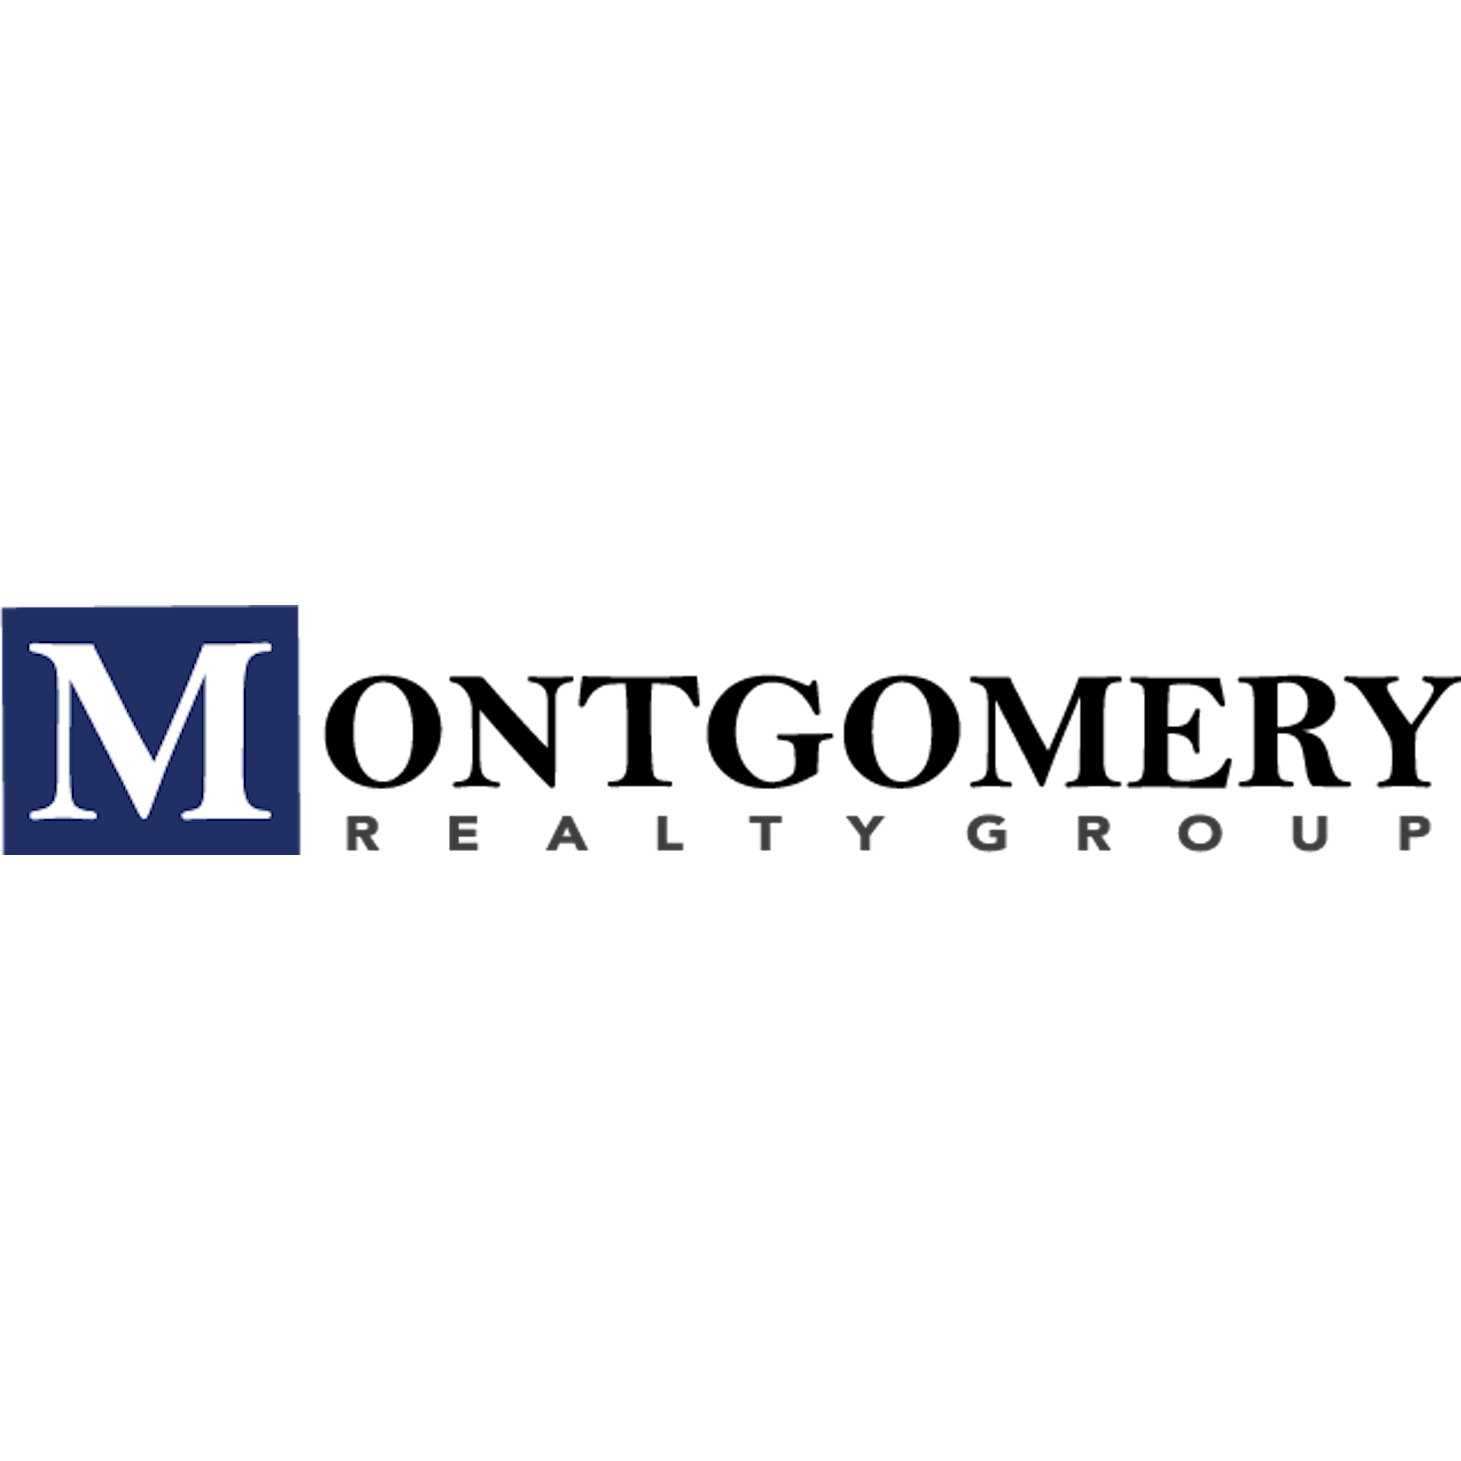 Montgomery Realty Group image 1